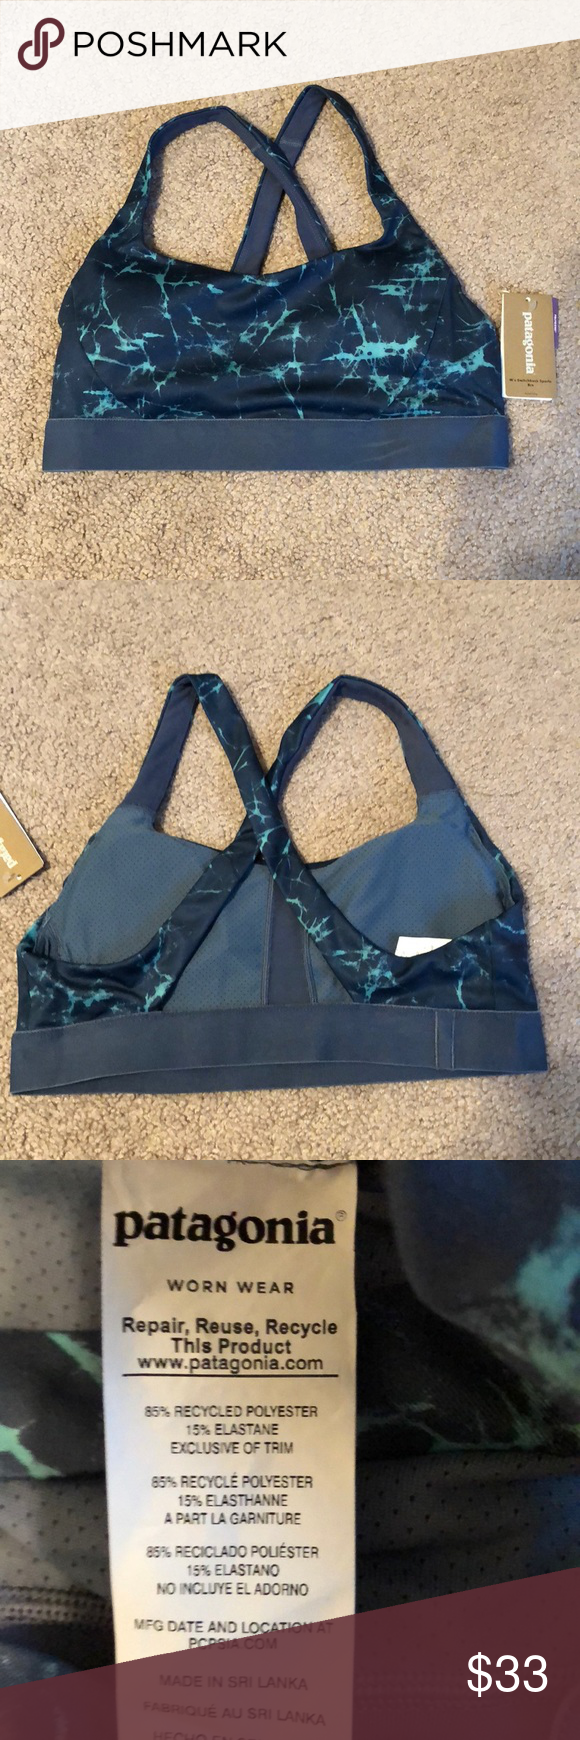 9160e38c81a1b NWT Patagonia Switchback Sports Bra Brand new! Removable cups ...